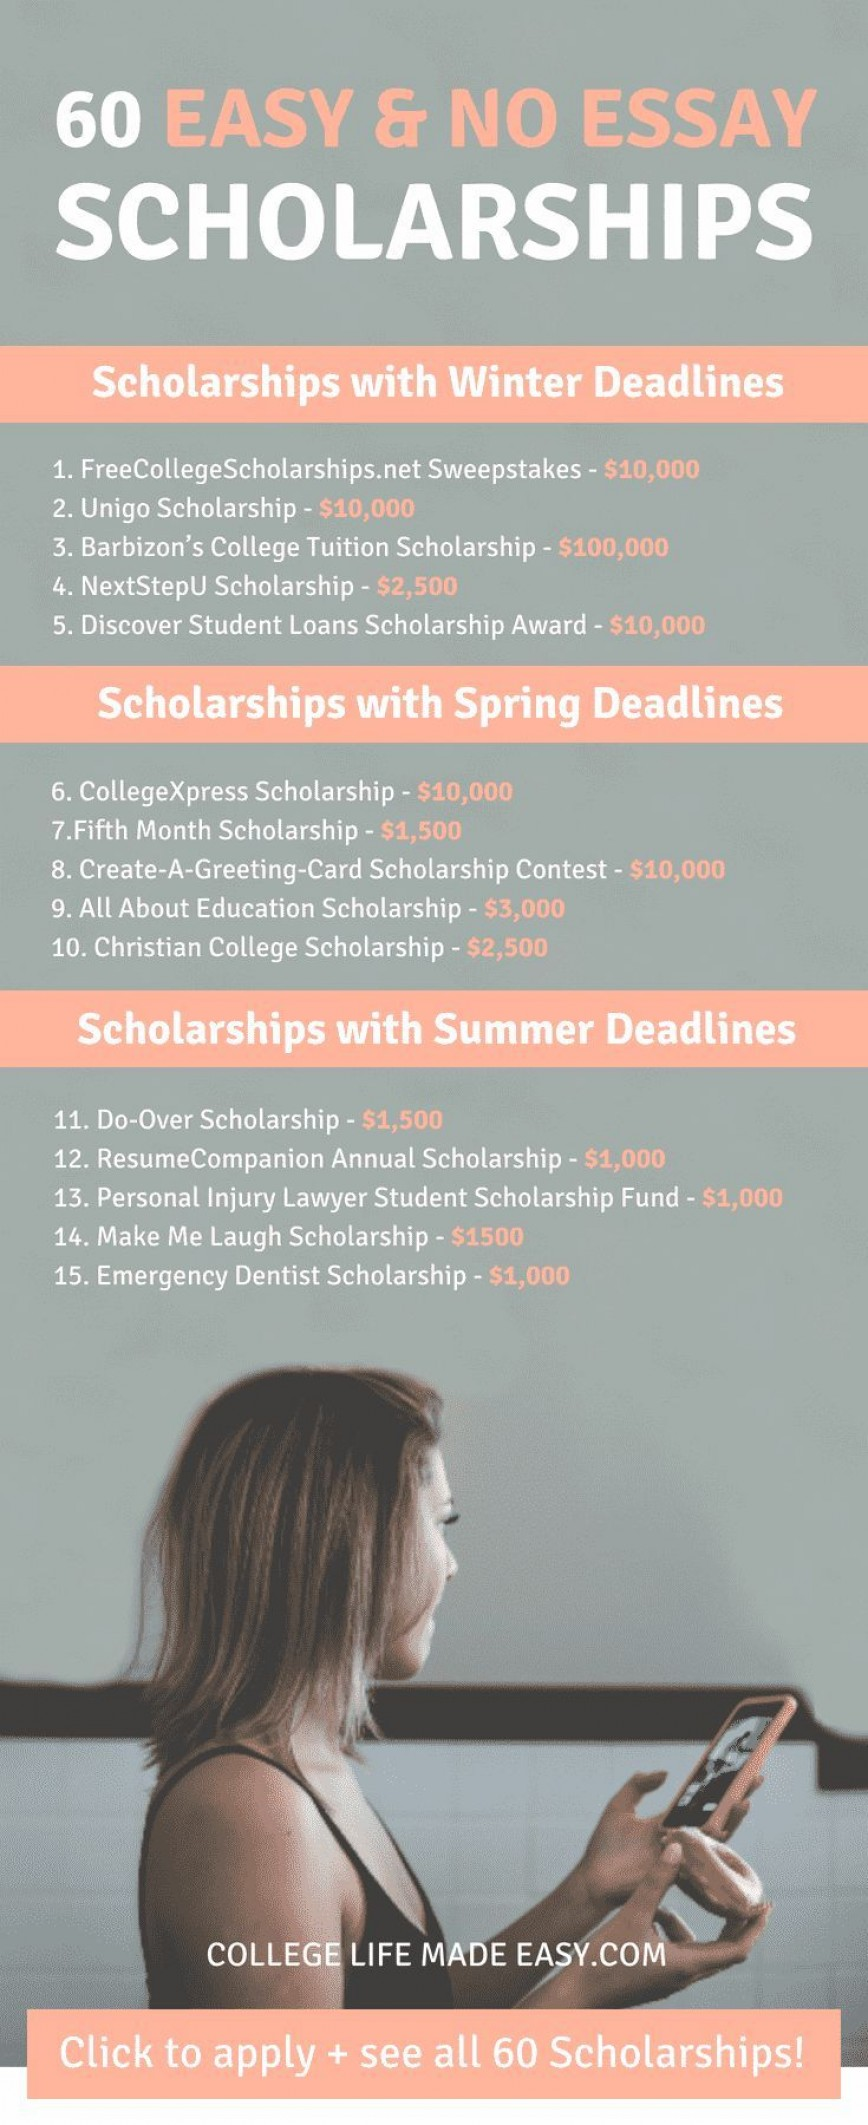 006 No Essay Scholarship Wondrous College Scholarships 2018 2019 Free 868